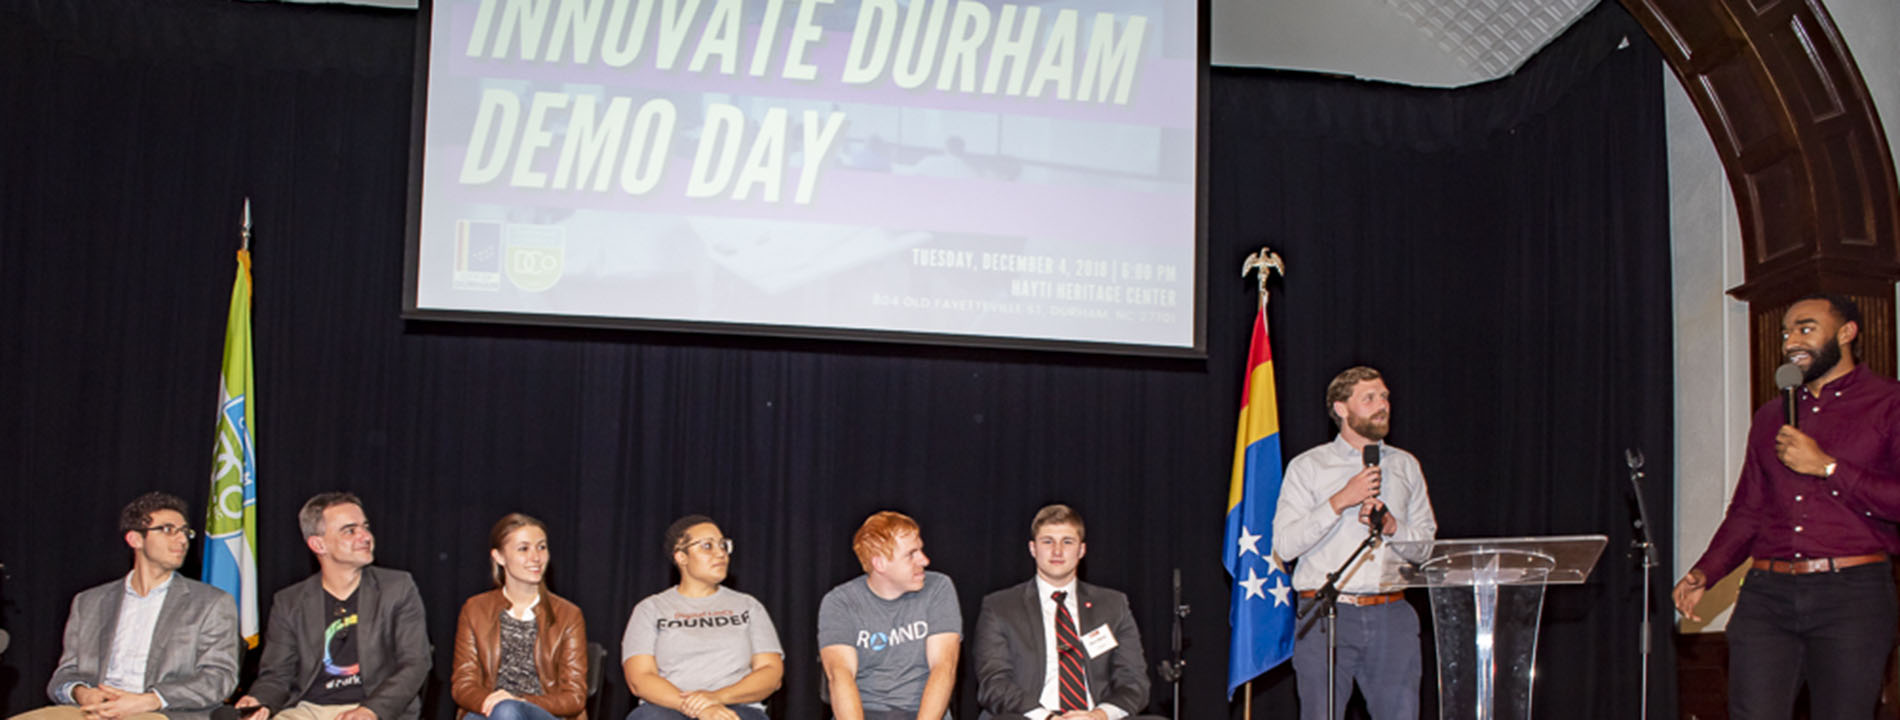 Innovate Durham Demo Day panel on stage